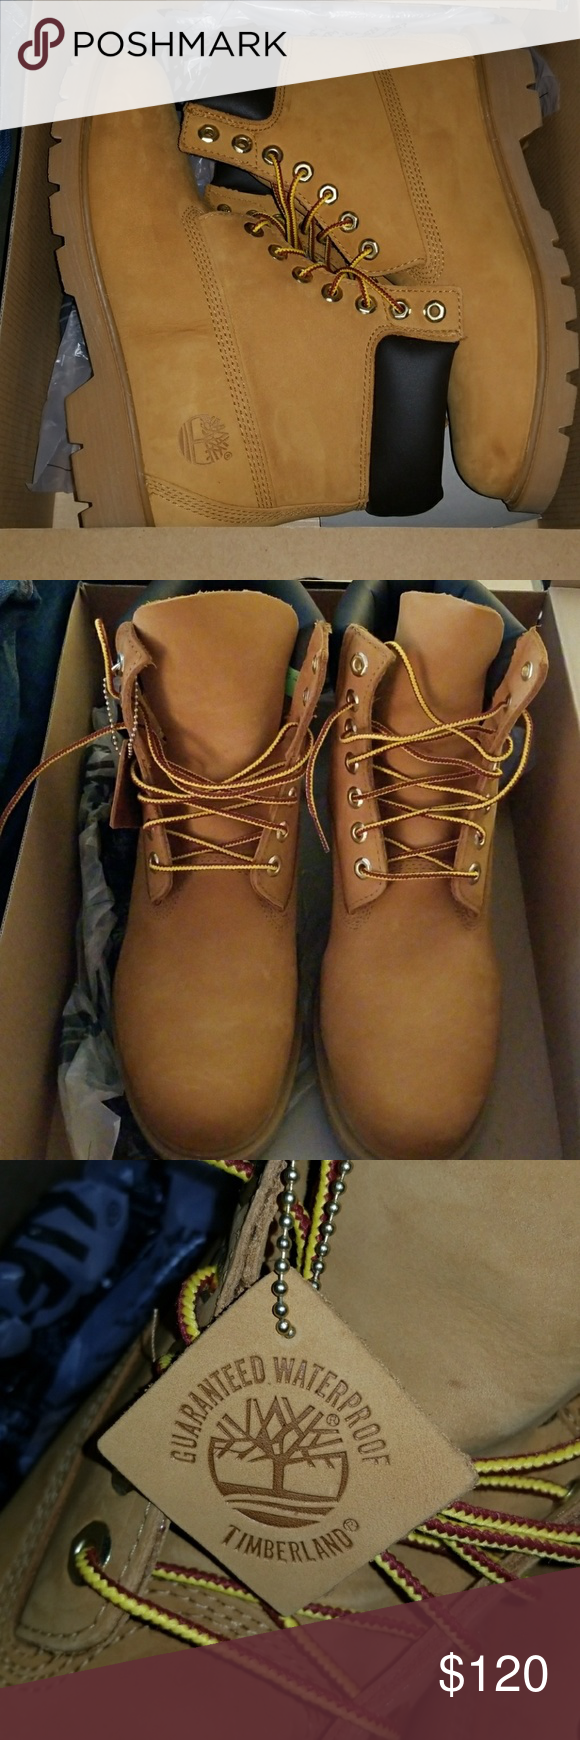 Timberland 6 inch boots Men's never worn with box and tag. Size 9. 6 inch boot Timberland Shoes Boots